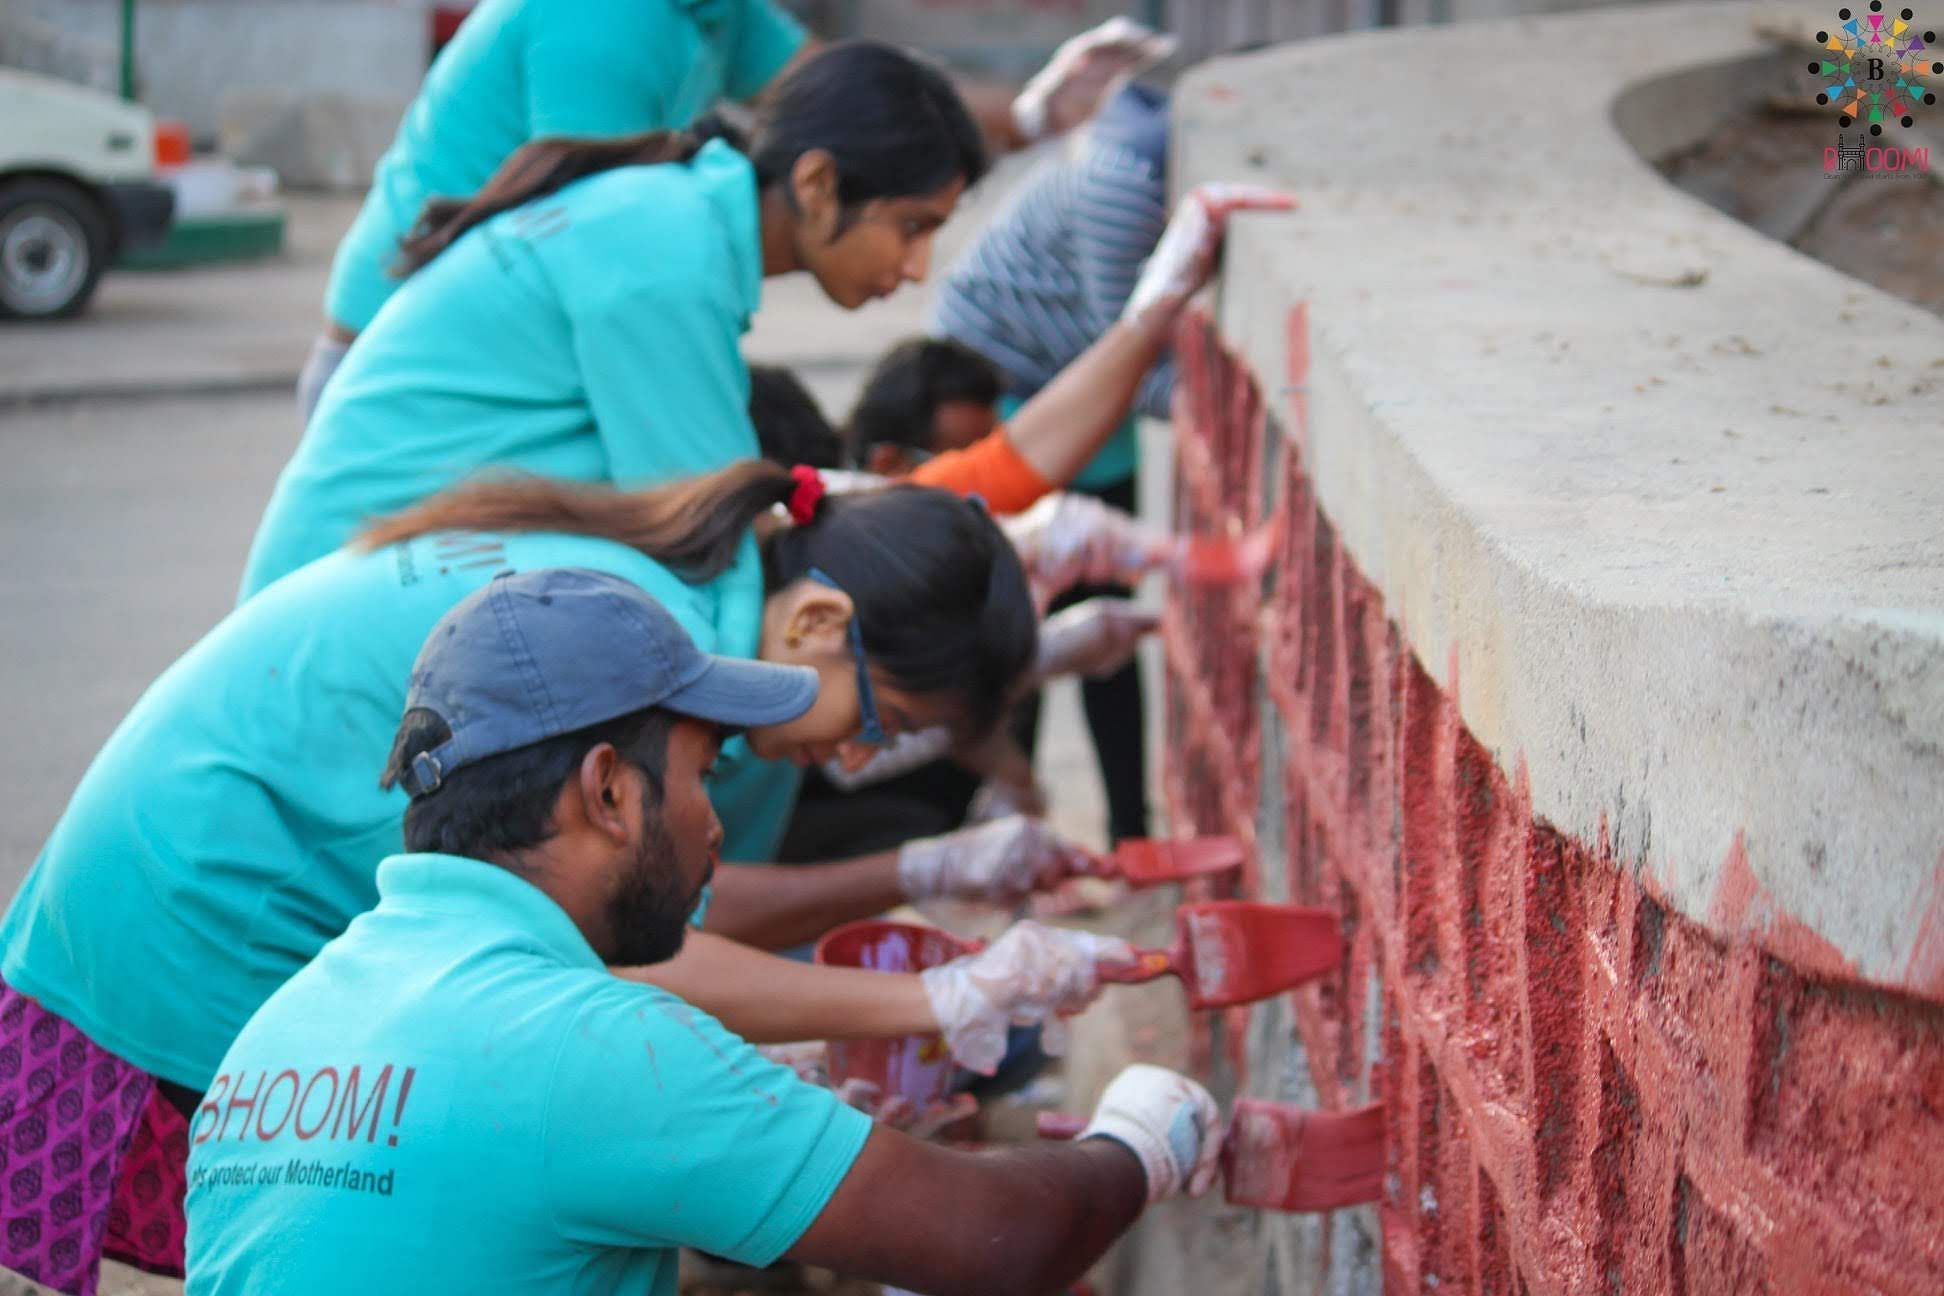 Beautifying our public spaces. (Source: Bhoomi Foundation)